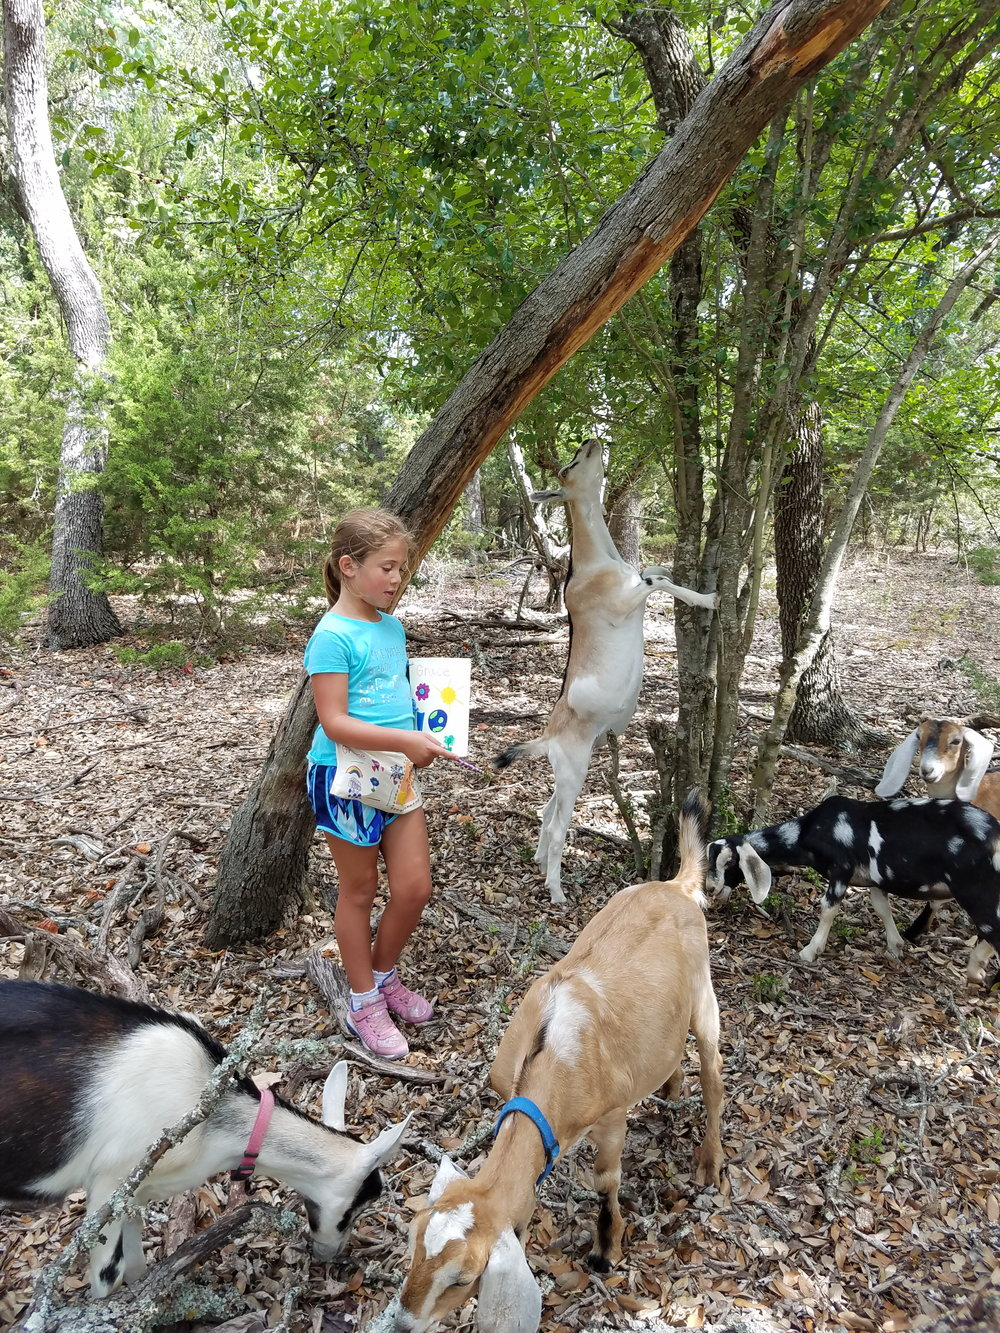 The children loved walkin' and talkin' and noticing all kinds of unexpected behaviors from goats including the fact that they stand on their hind legs and eat from trees.